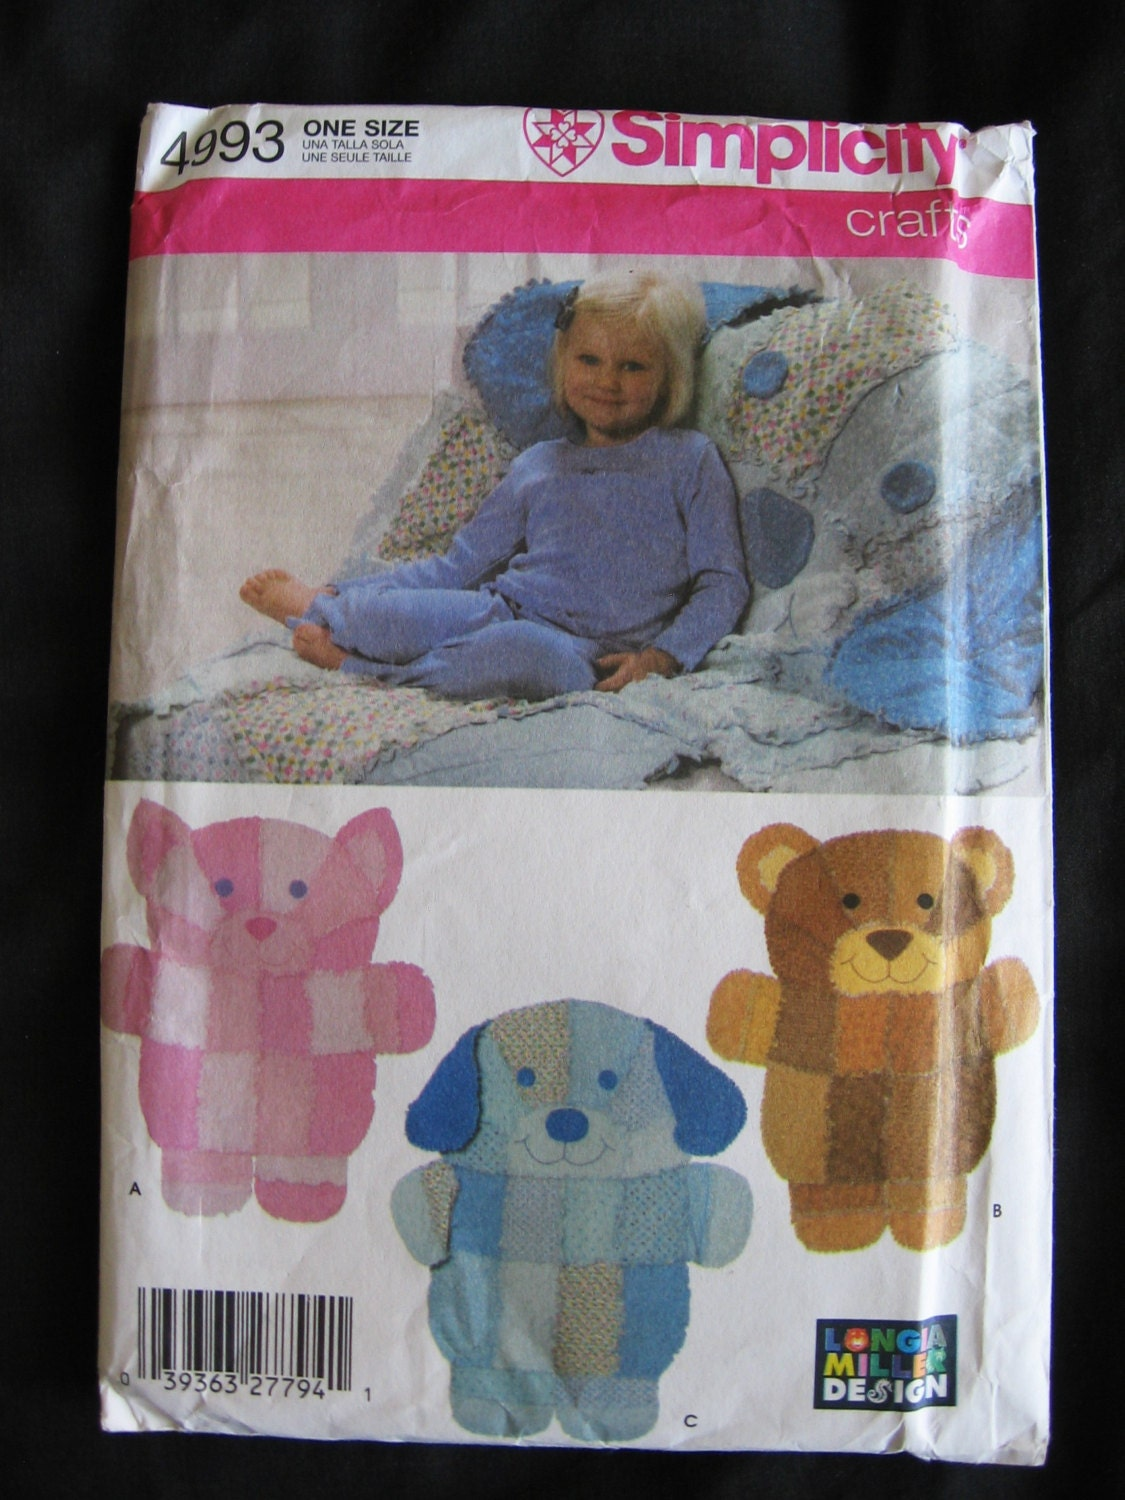 Simplicity crafts rag quilt wall hanging or throw by vntgfindz for Simplicity craft pattern 4993